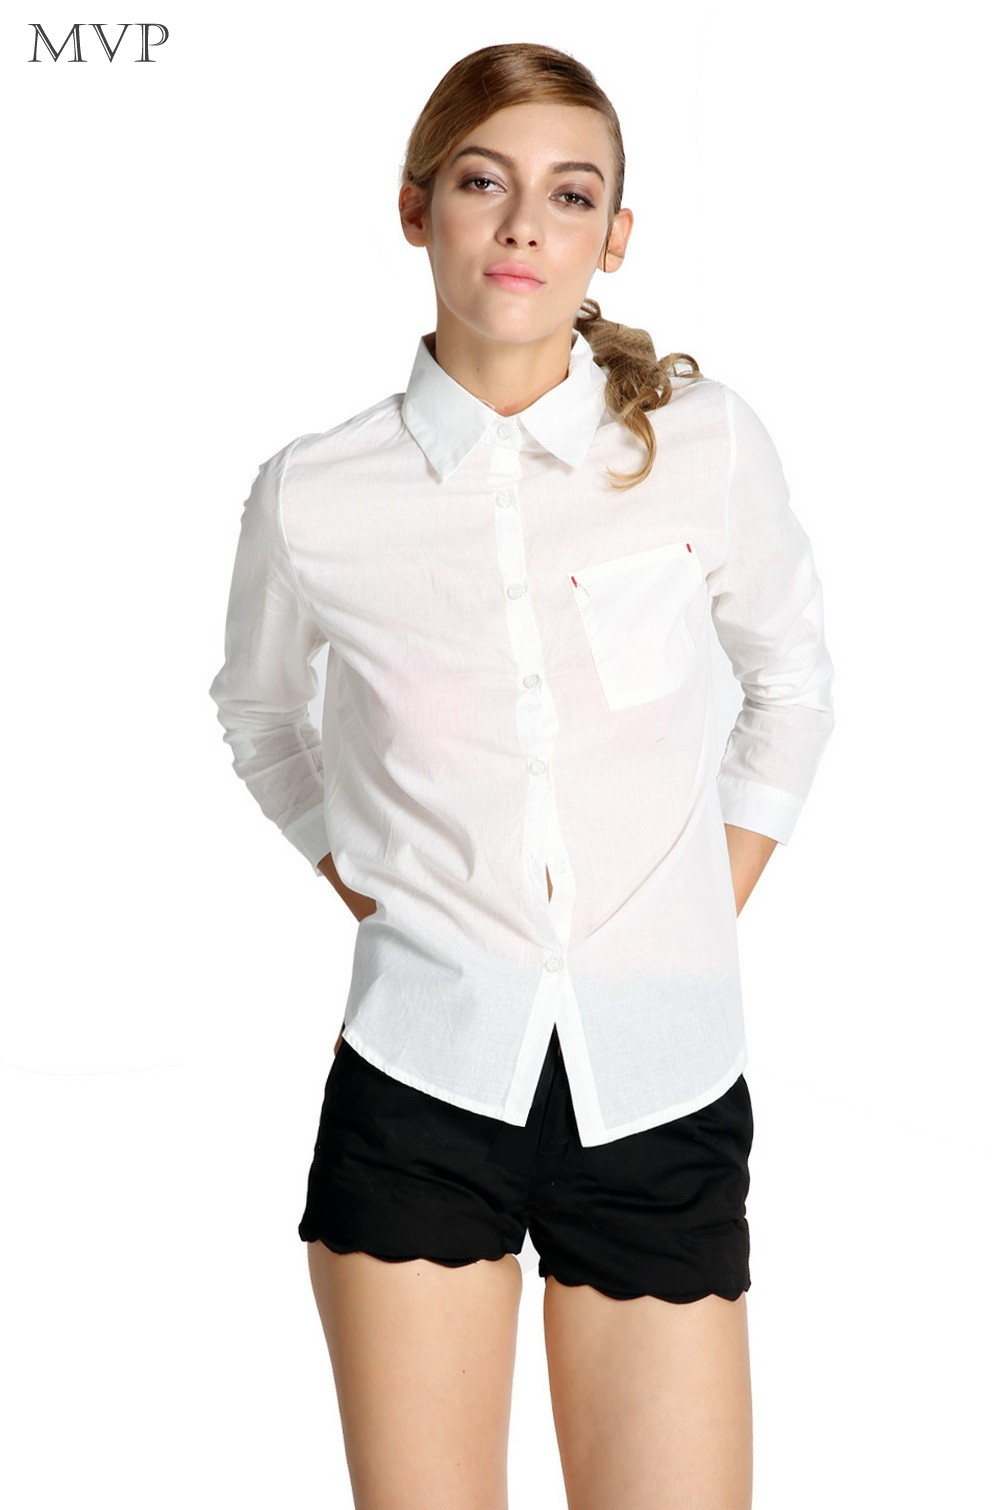 Shop from women's button down shirts, women's denim shirts, women's linen shirts, women's oxford shirts, and silky blouses. Choose from short sleeve blouses, 3/4 length sleeve blouses and long sleeve women's shirts.